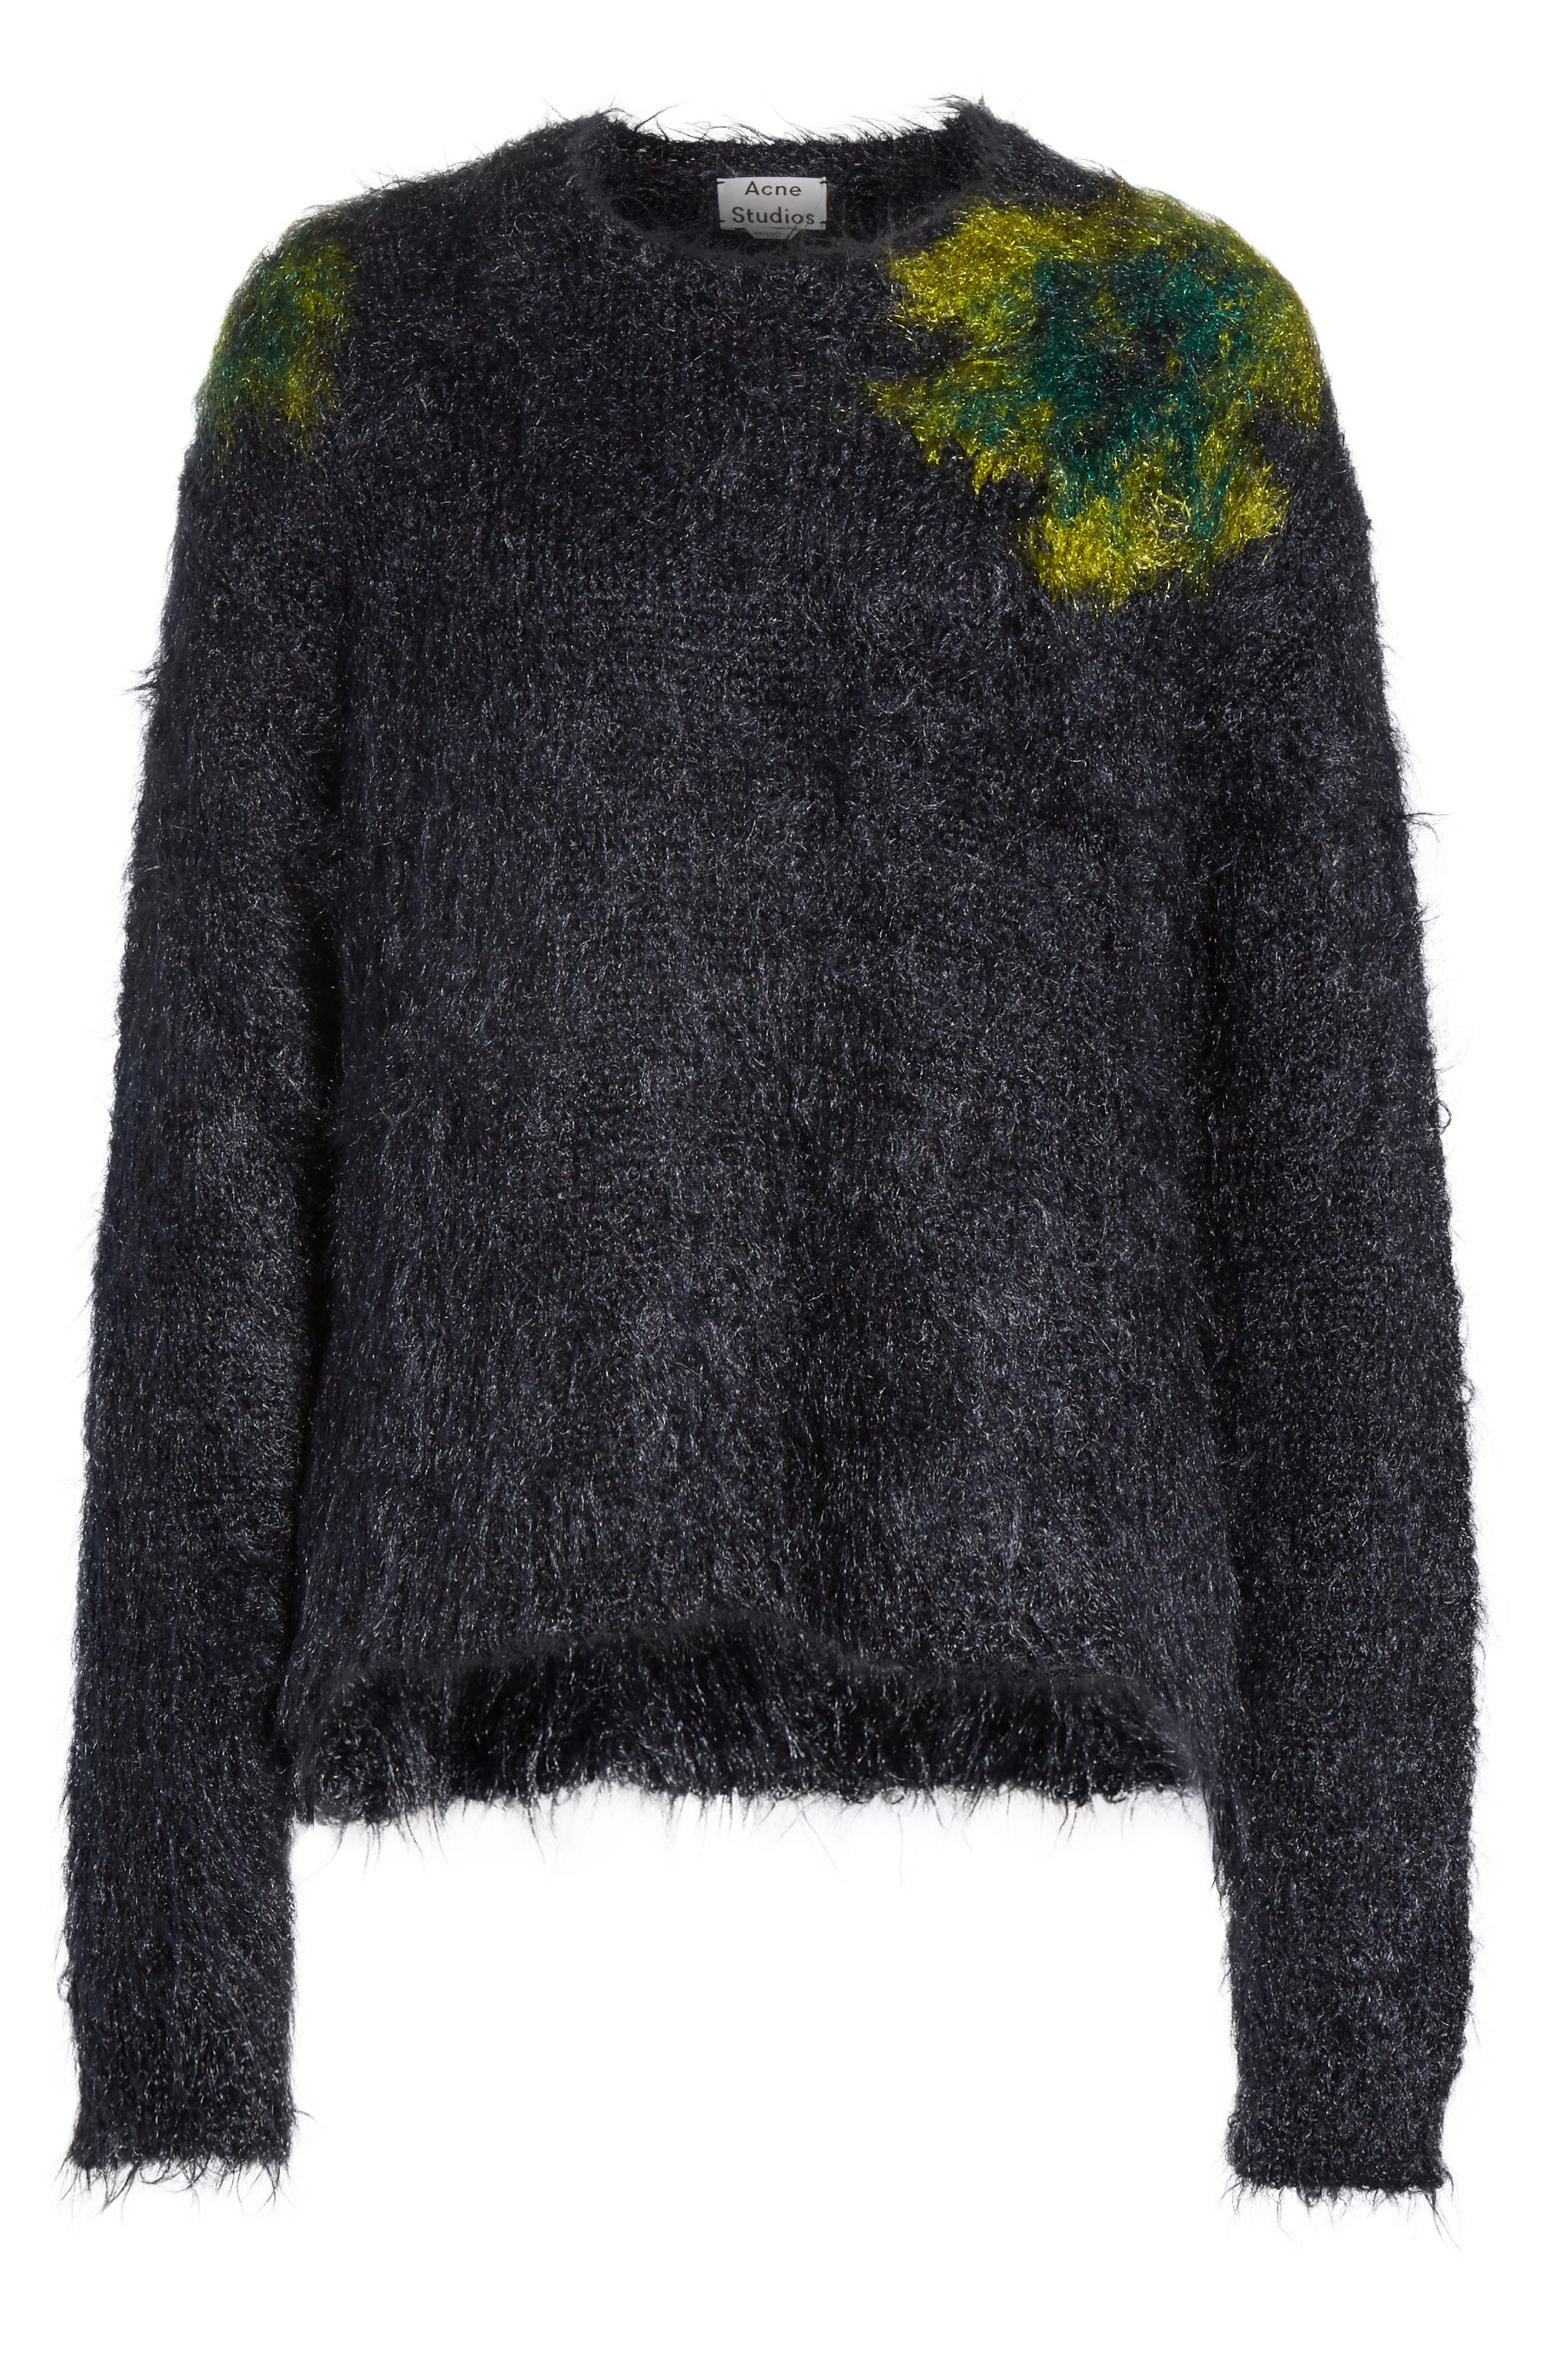 Fhira Hairy Oversize Sweater,                             Alternate thumbnail 6, color,                             415